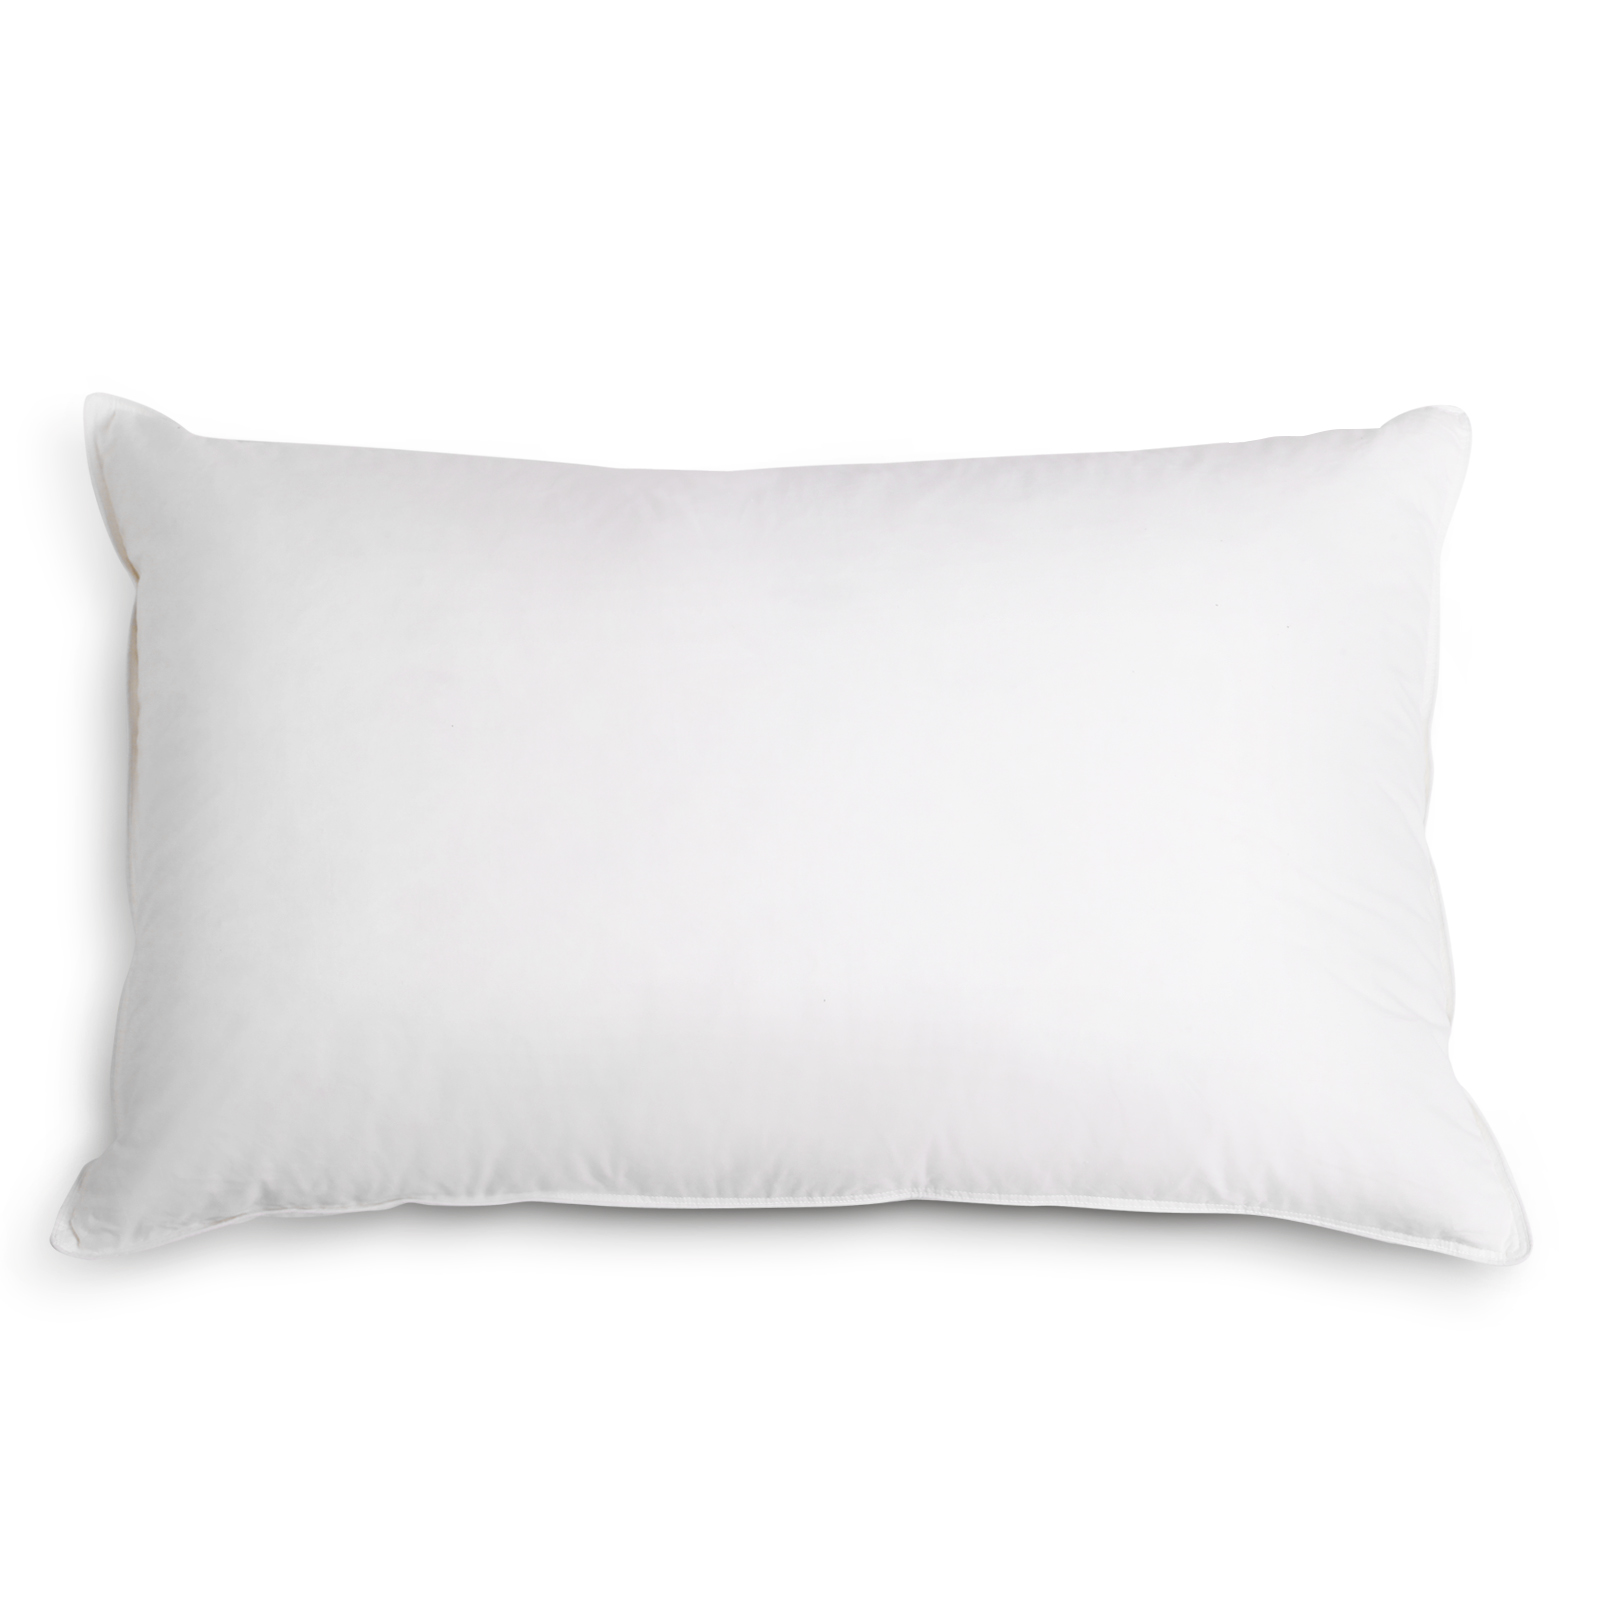 Giselle Bedding Family Hotel 4 Pack Bed Pillows Soft Medium Firm Cotton 48X73CM